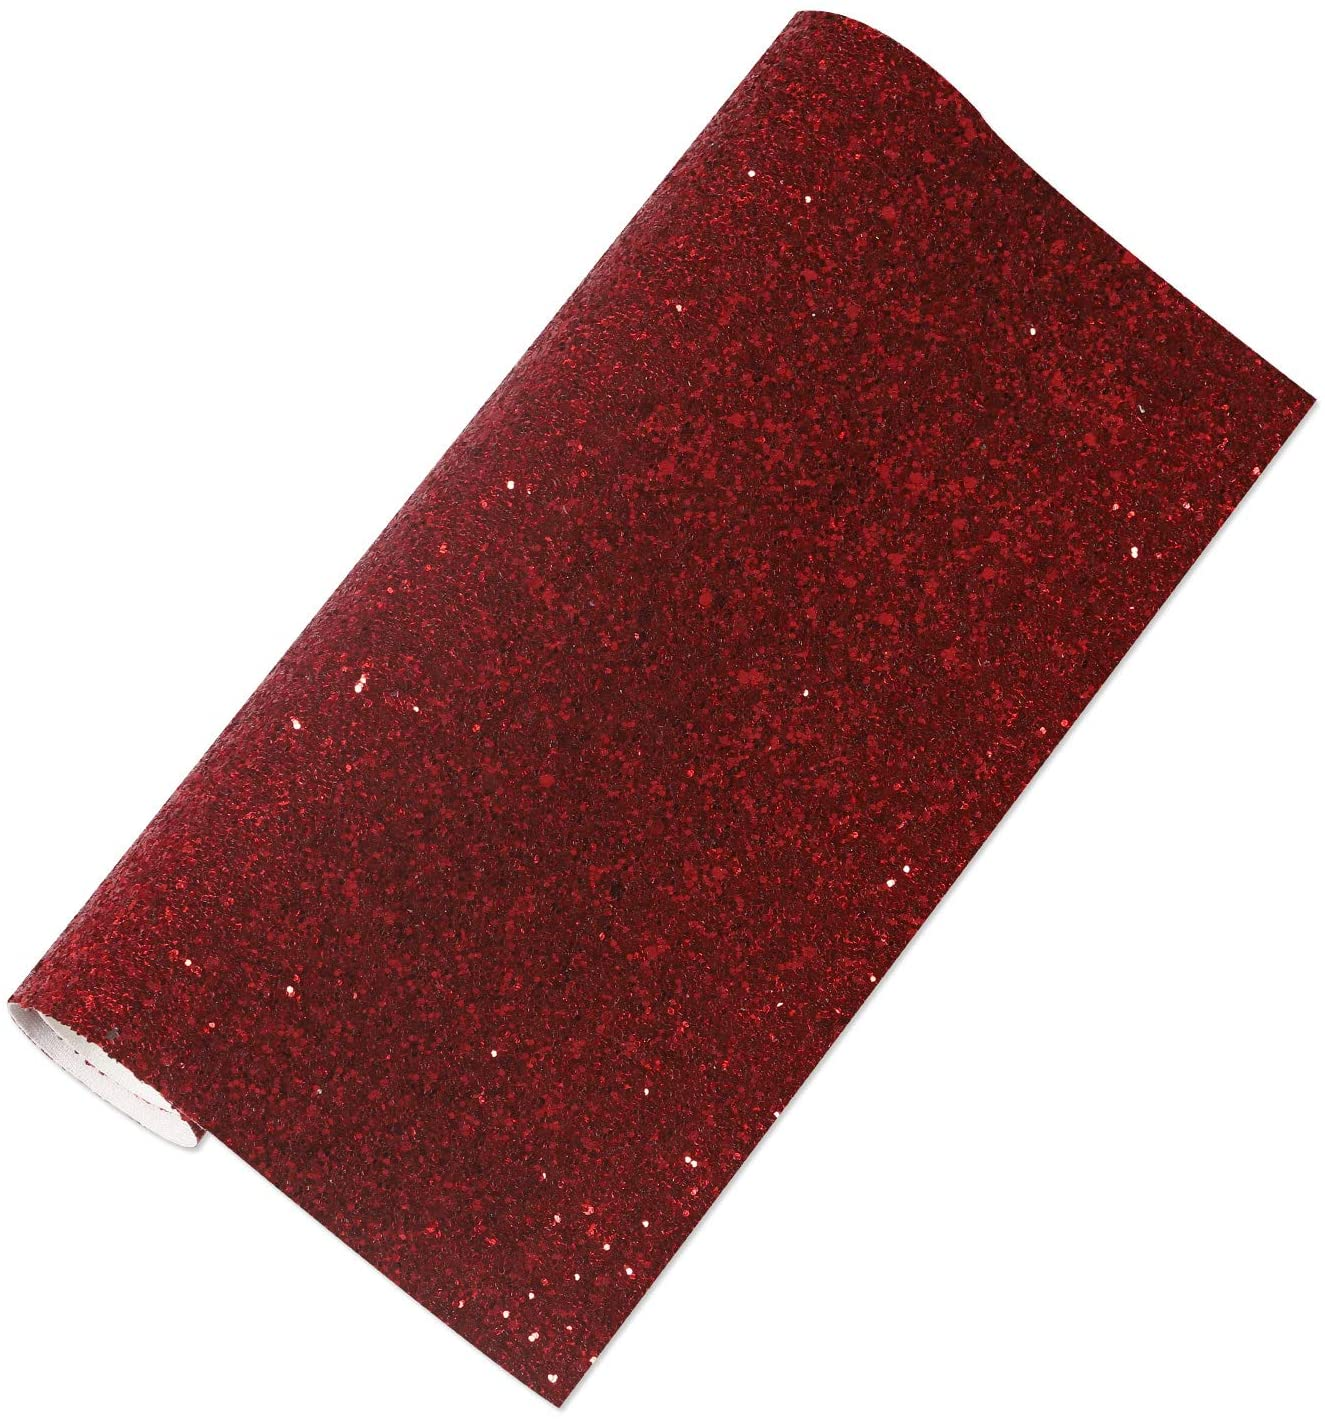 Funcolor 8.2 x 53(21cm x 135cm) Red Faux Leather Sheets Fabric Shiny Glitter Pattern Printed Bow Earrings Making Handmade Leather DIY Craft,Festival Decoration……